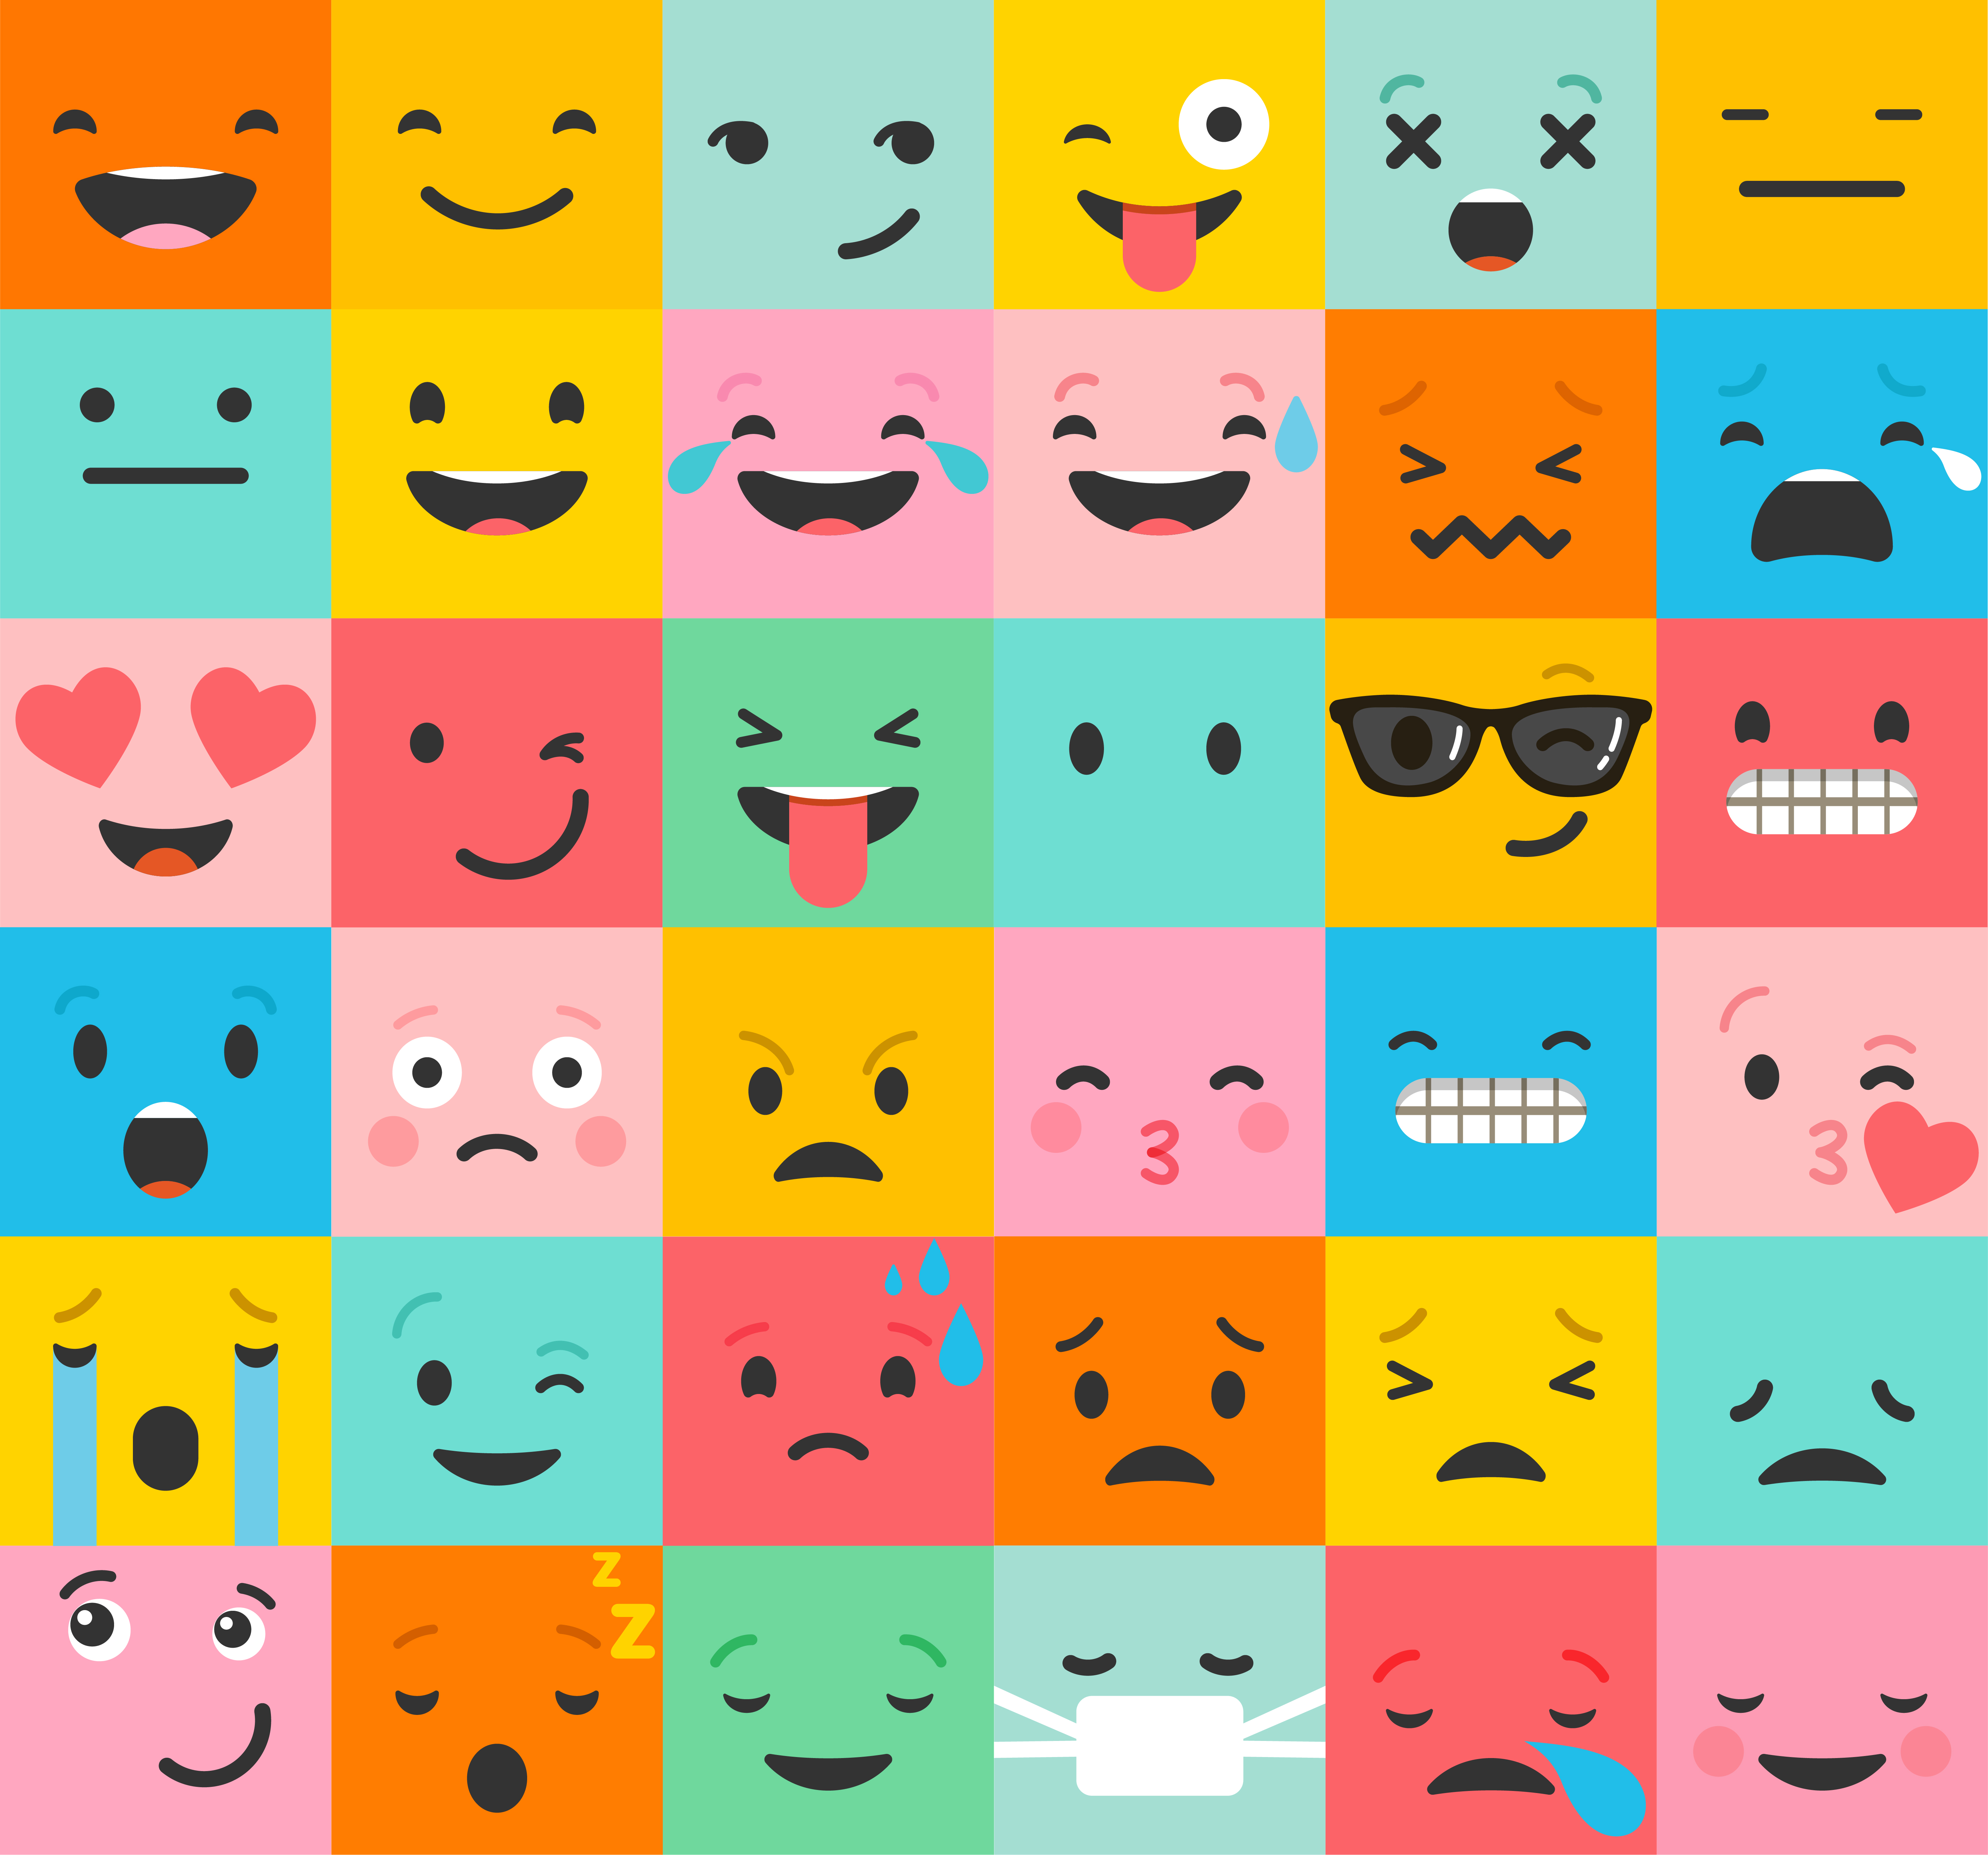 10 Interview Questions To Assess Emotional Intelligence